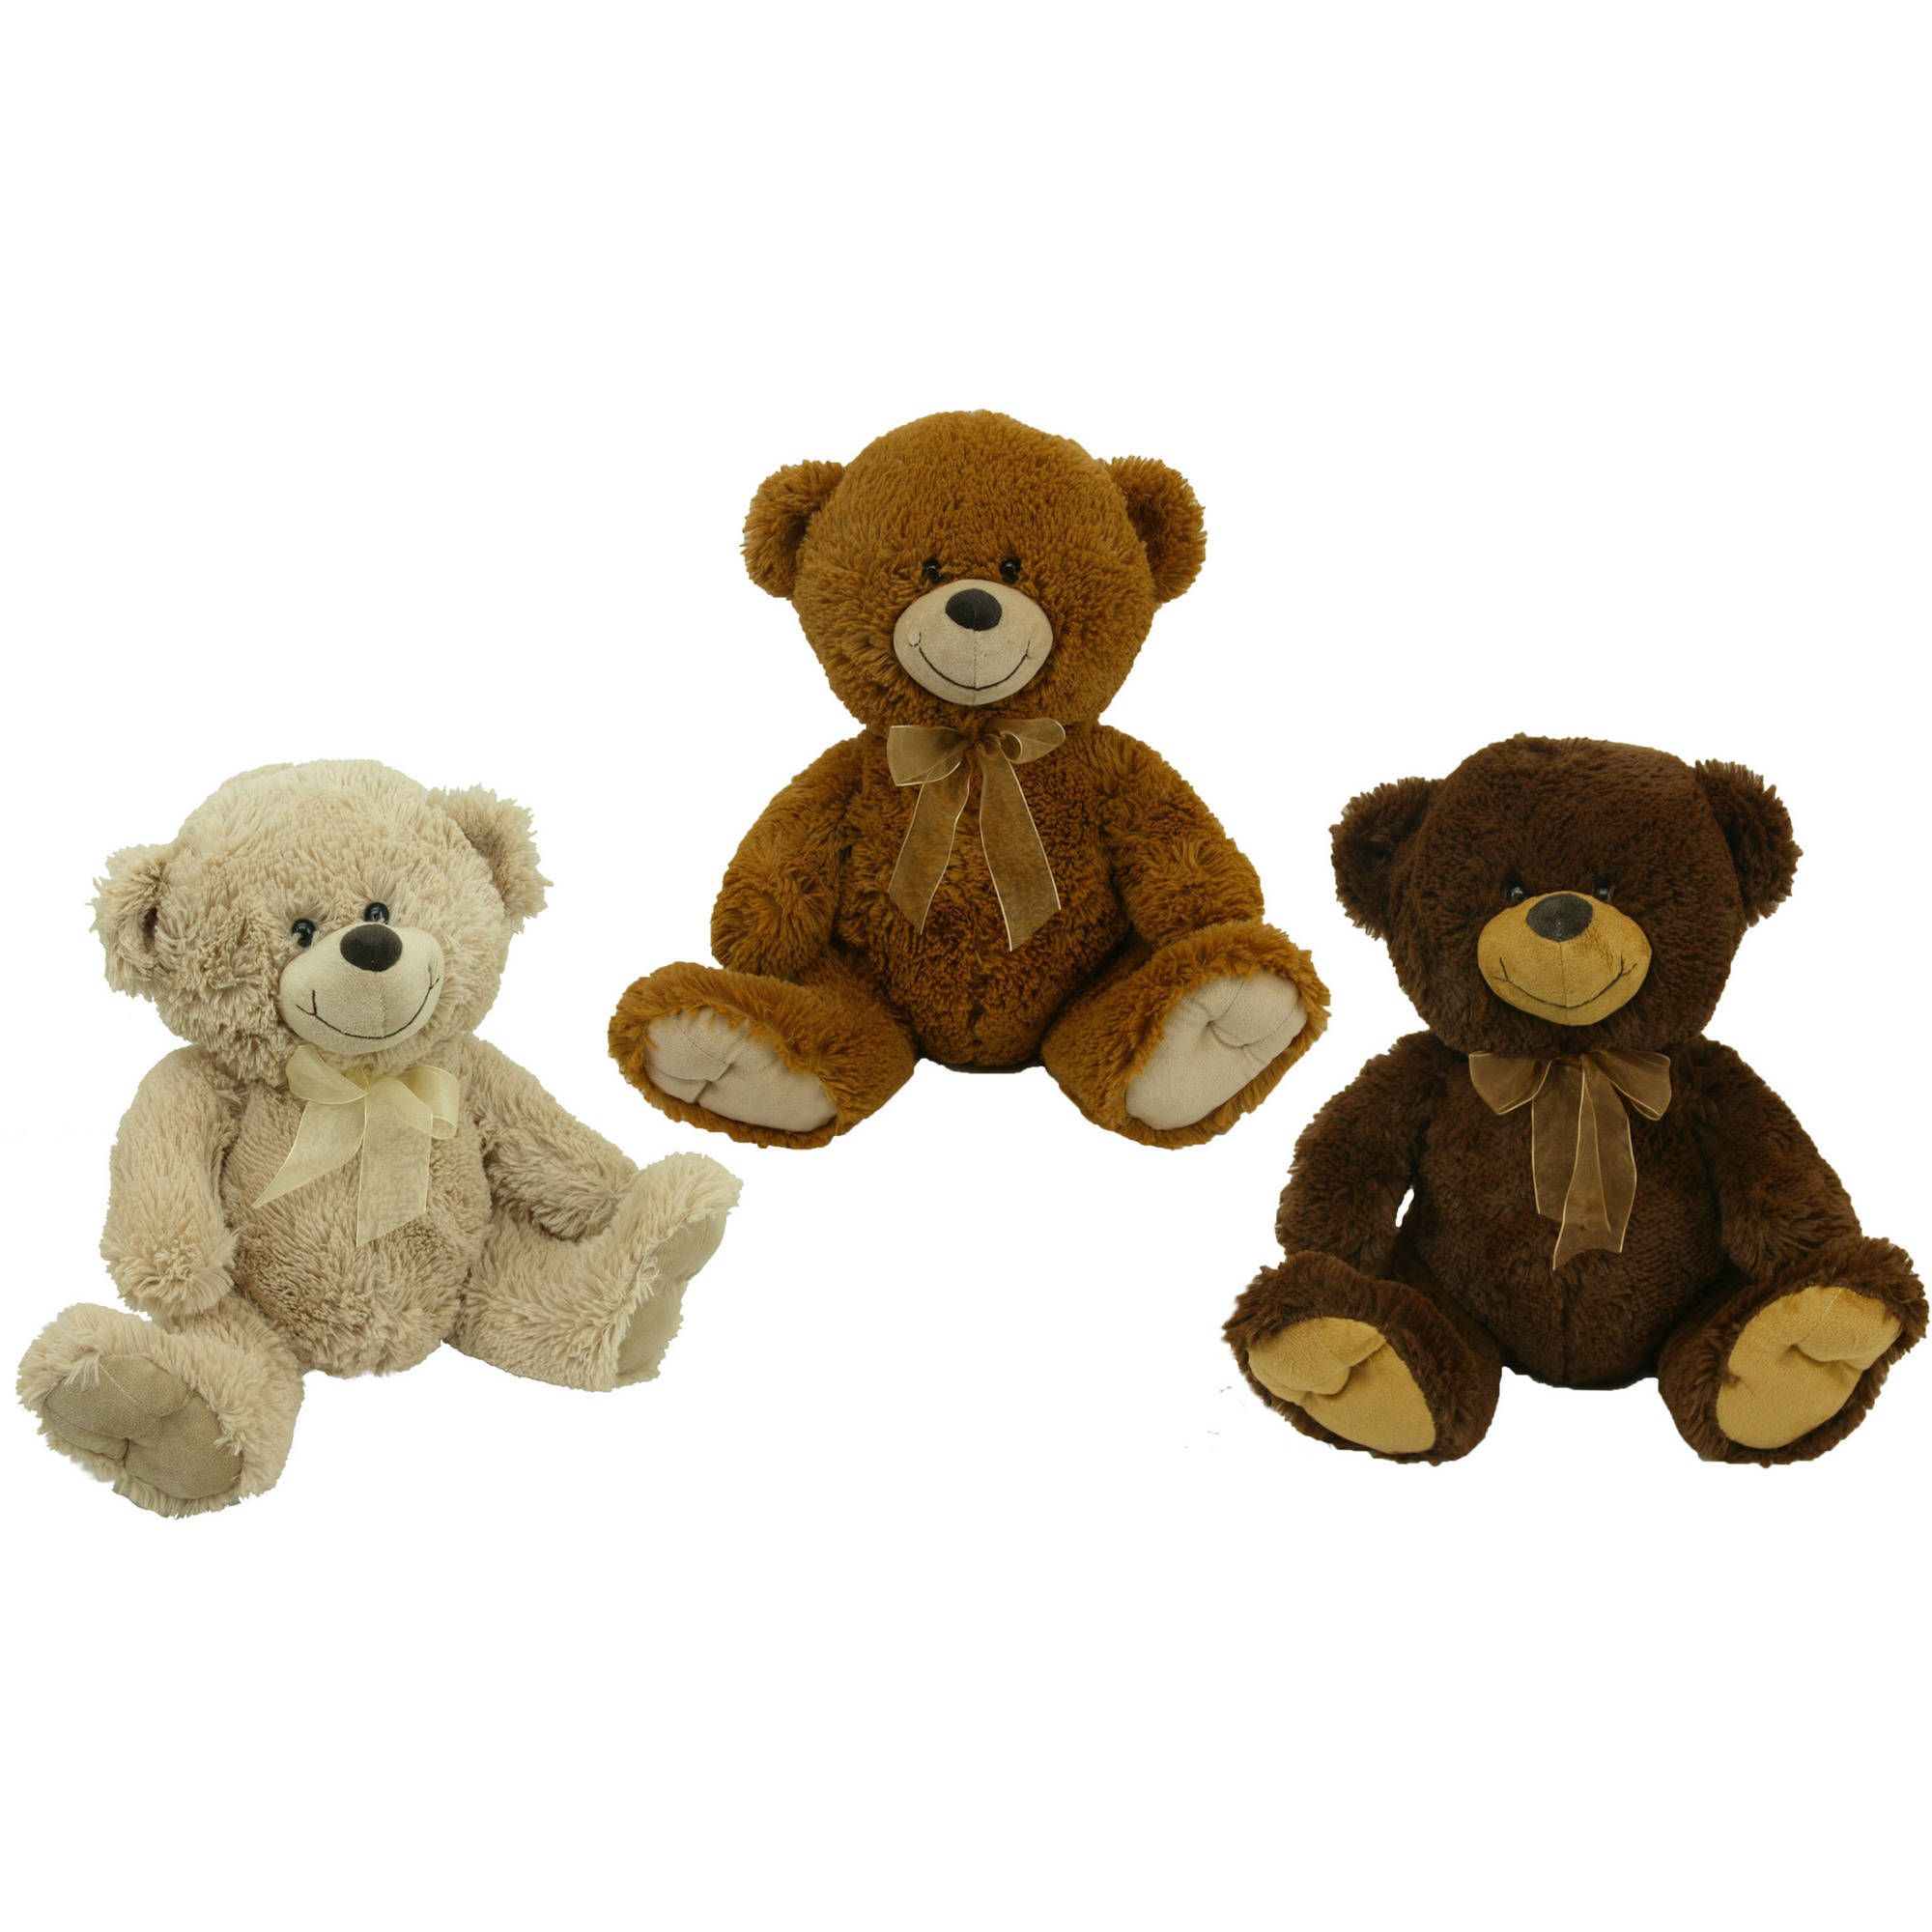 "19"" Snuggly and Cuddly Teddy Bear, Tan, Brown and Honey by Generic"